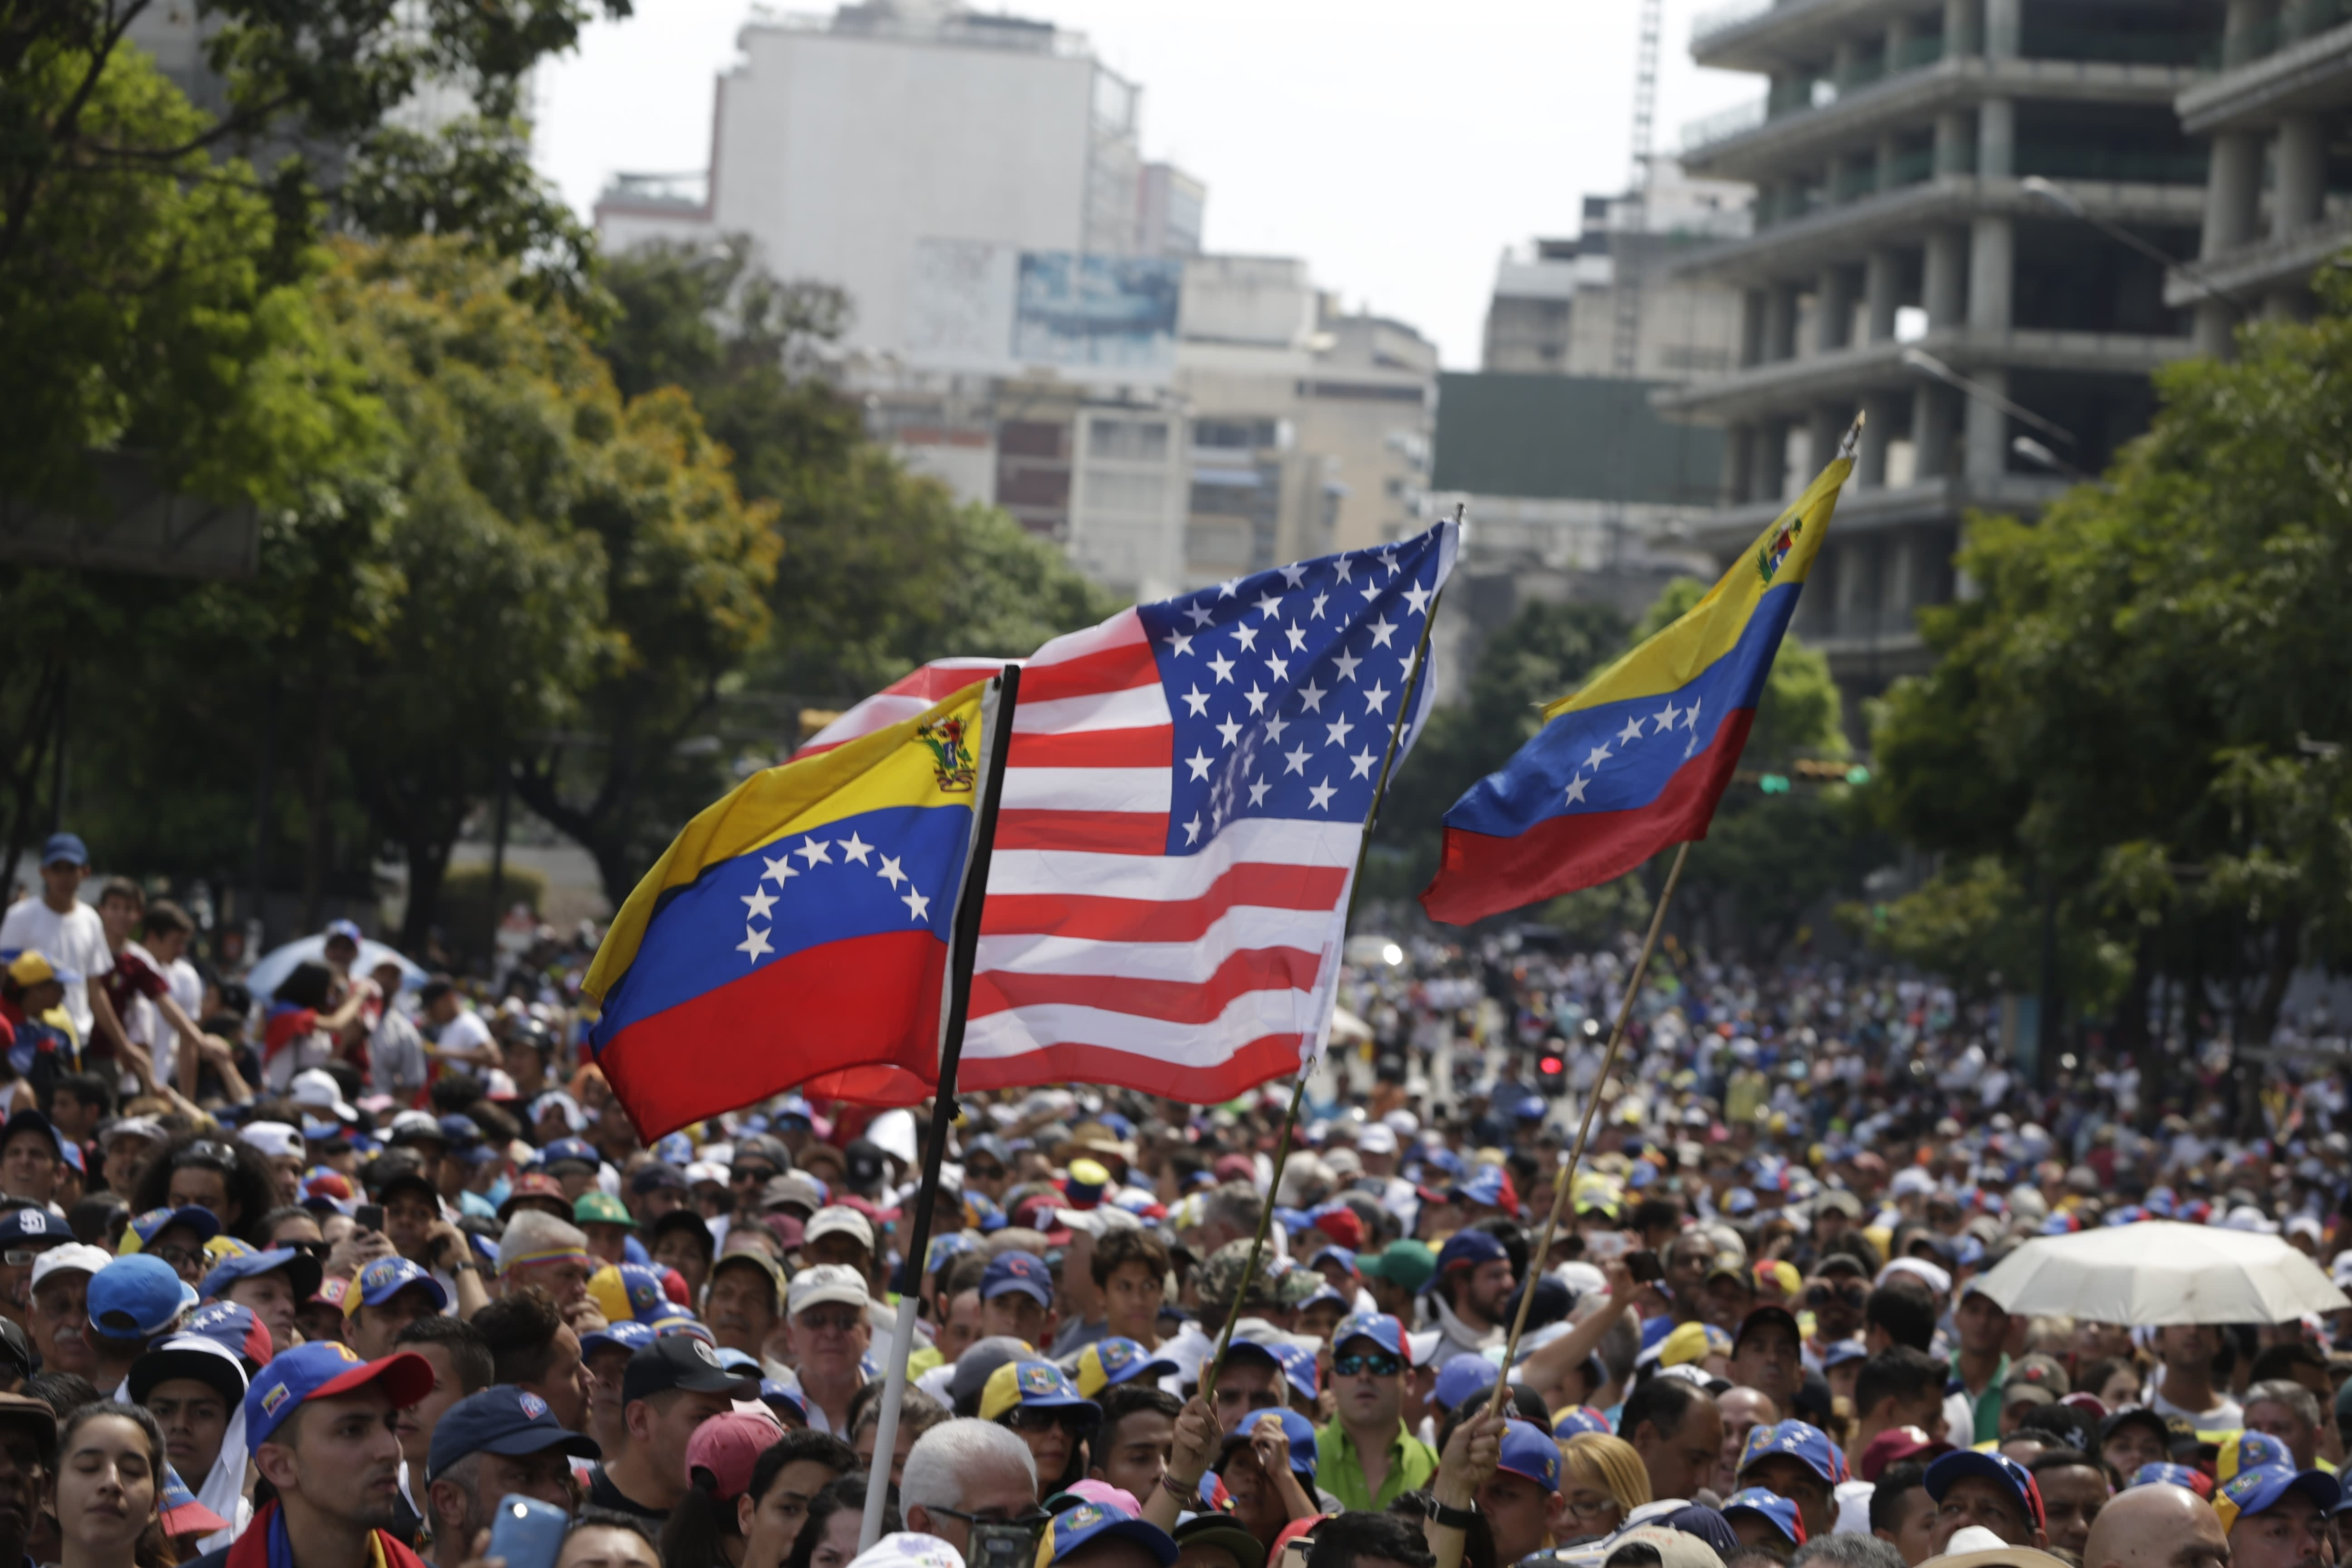 Supporters holds Venezuelan and U.S. national flags as they listen to opposition leader Juan Guaidó speak during a rally in Caracas, Venezuela, Wednesday, May 1, 2019. Guaidó called for Venezuelans to fill streets around the country Wednesday to demand President Nicolas Maduro's ouster. Maduro is also calling for his supporters to rally. (AP Photo/Martin Mejia)